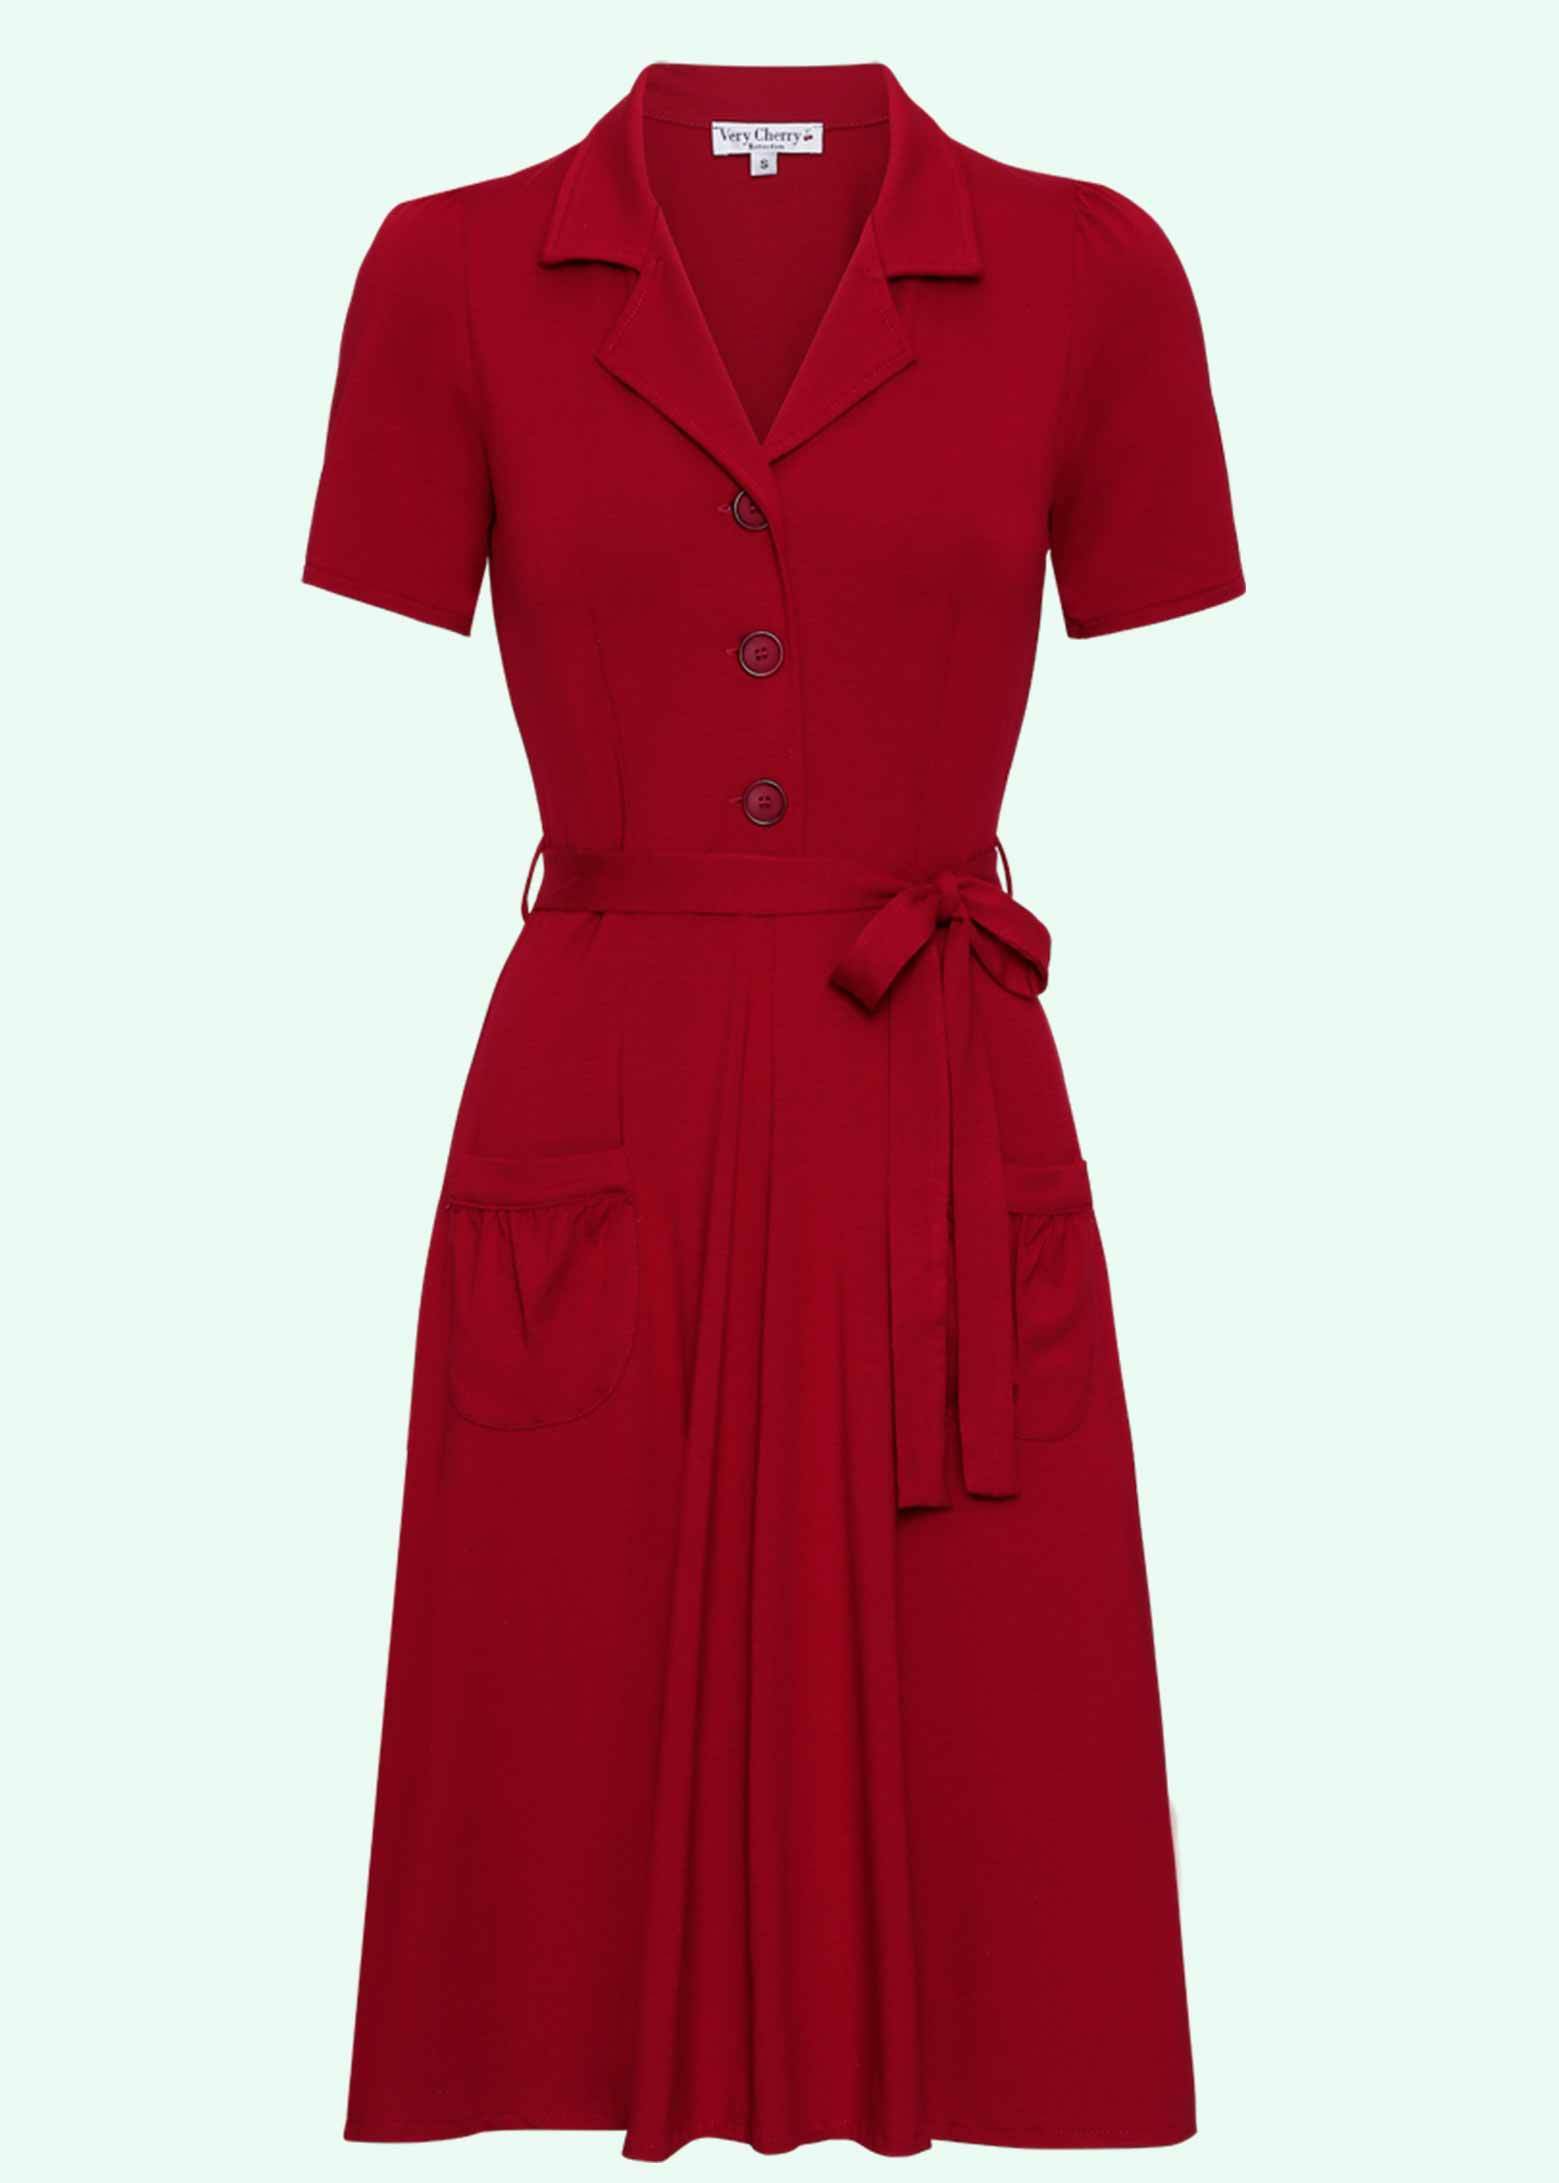 Vintage style shirt dress in red from Very Cherry